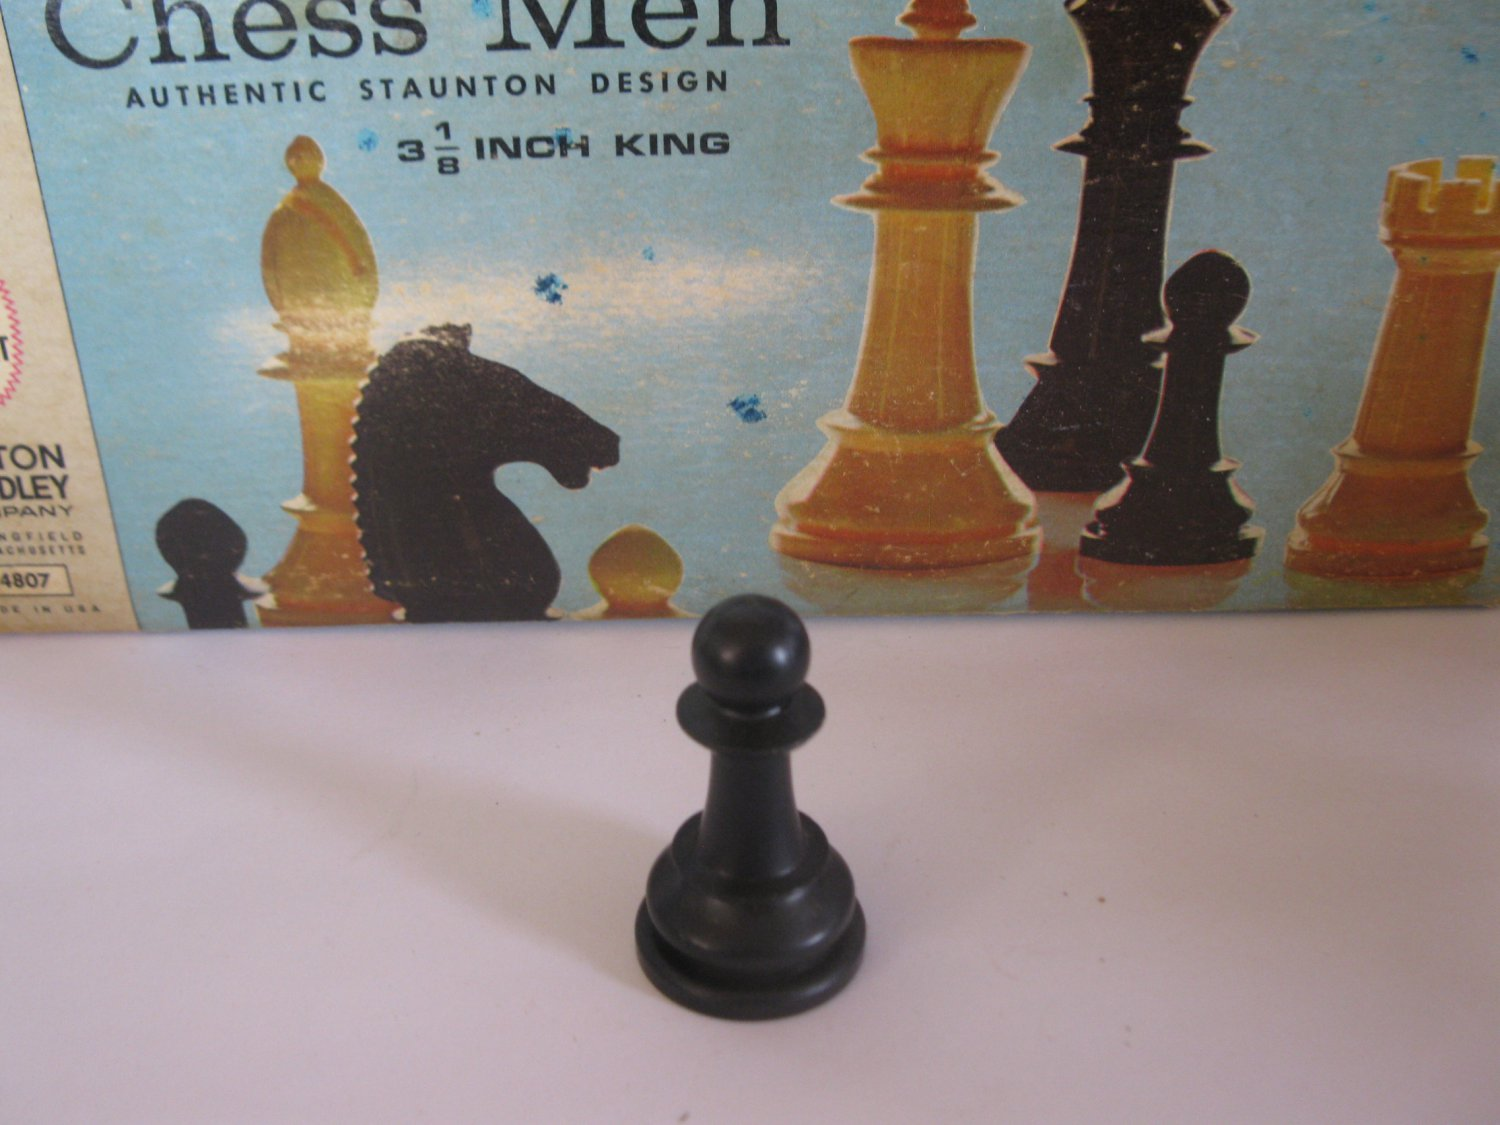 1969 Chess Men Board Game Piece: Authentic Stauton Design - Black Pawn